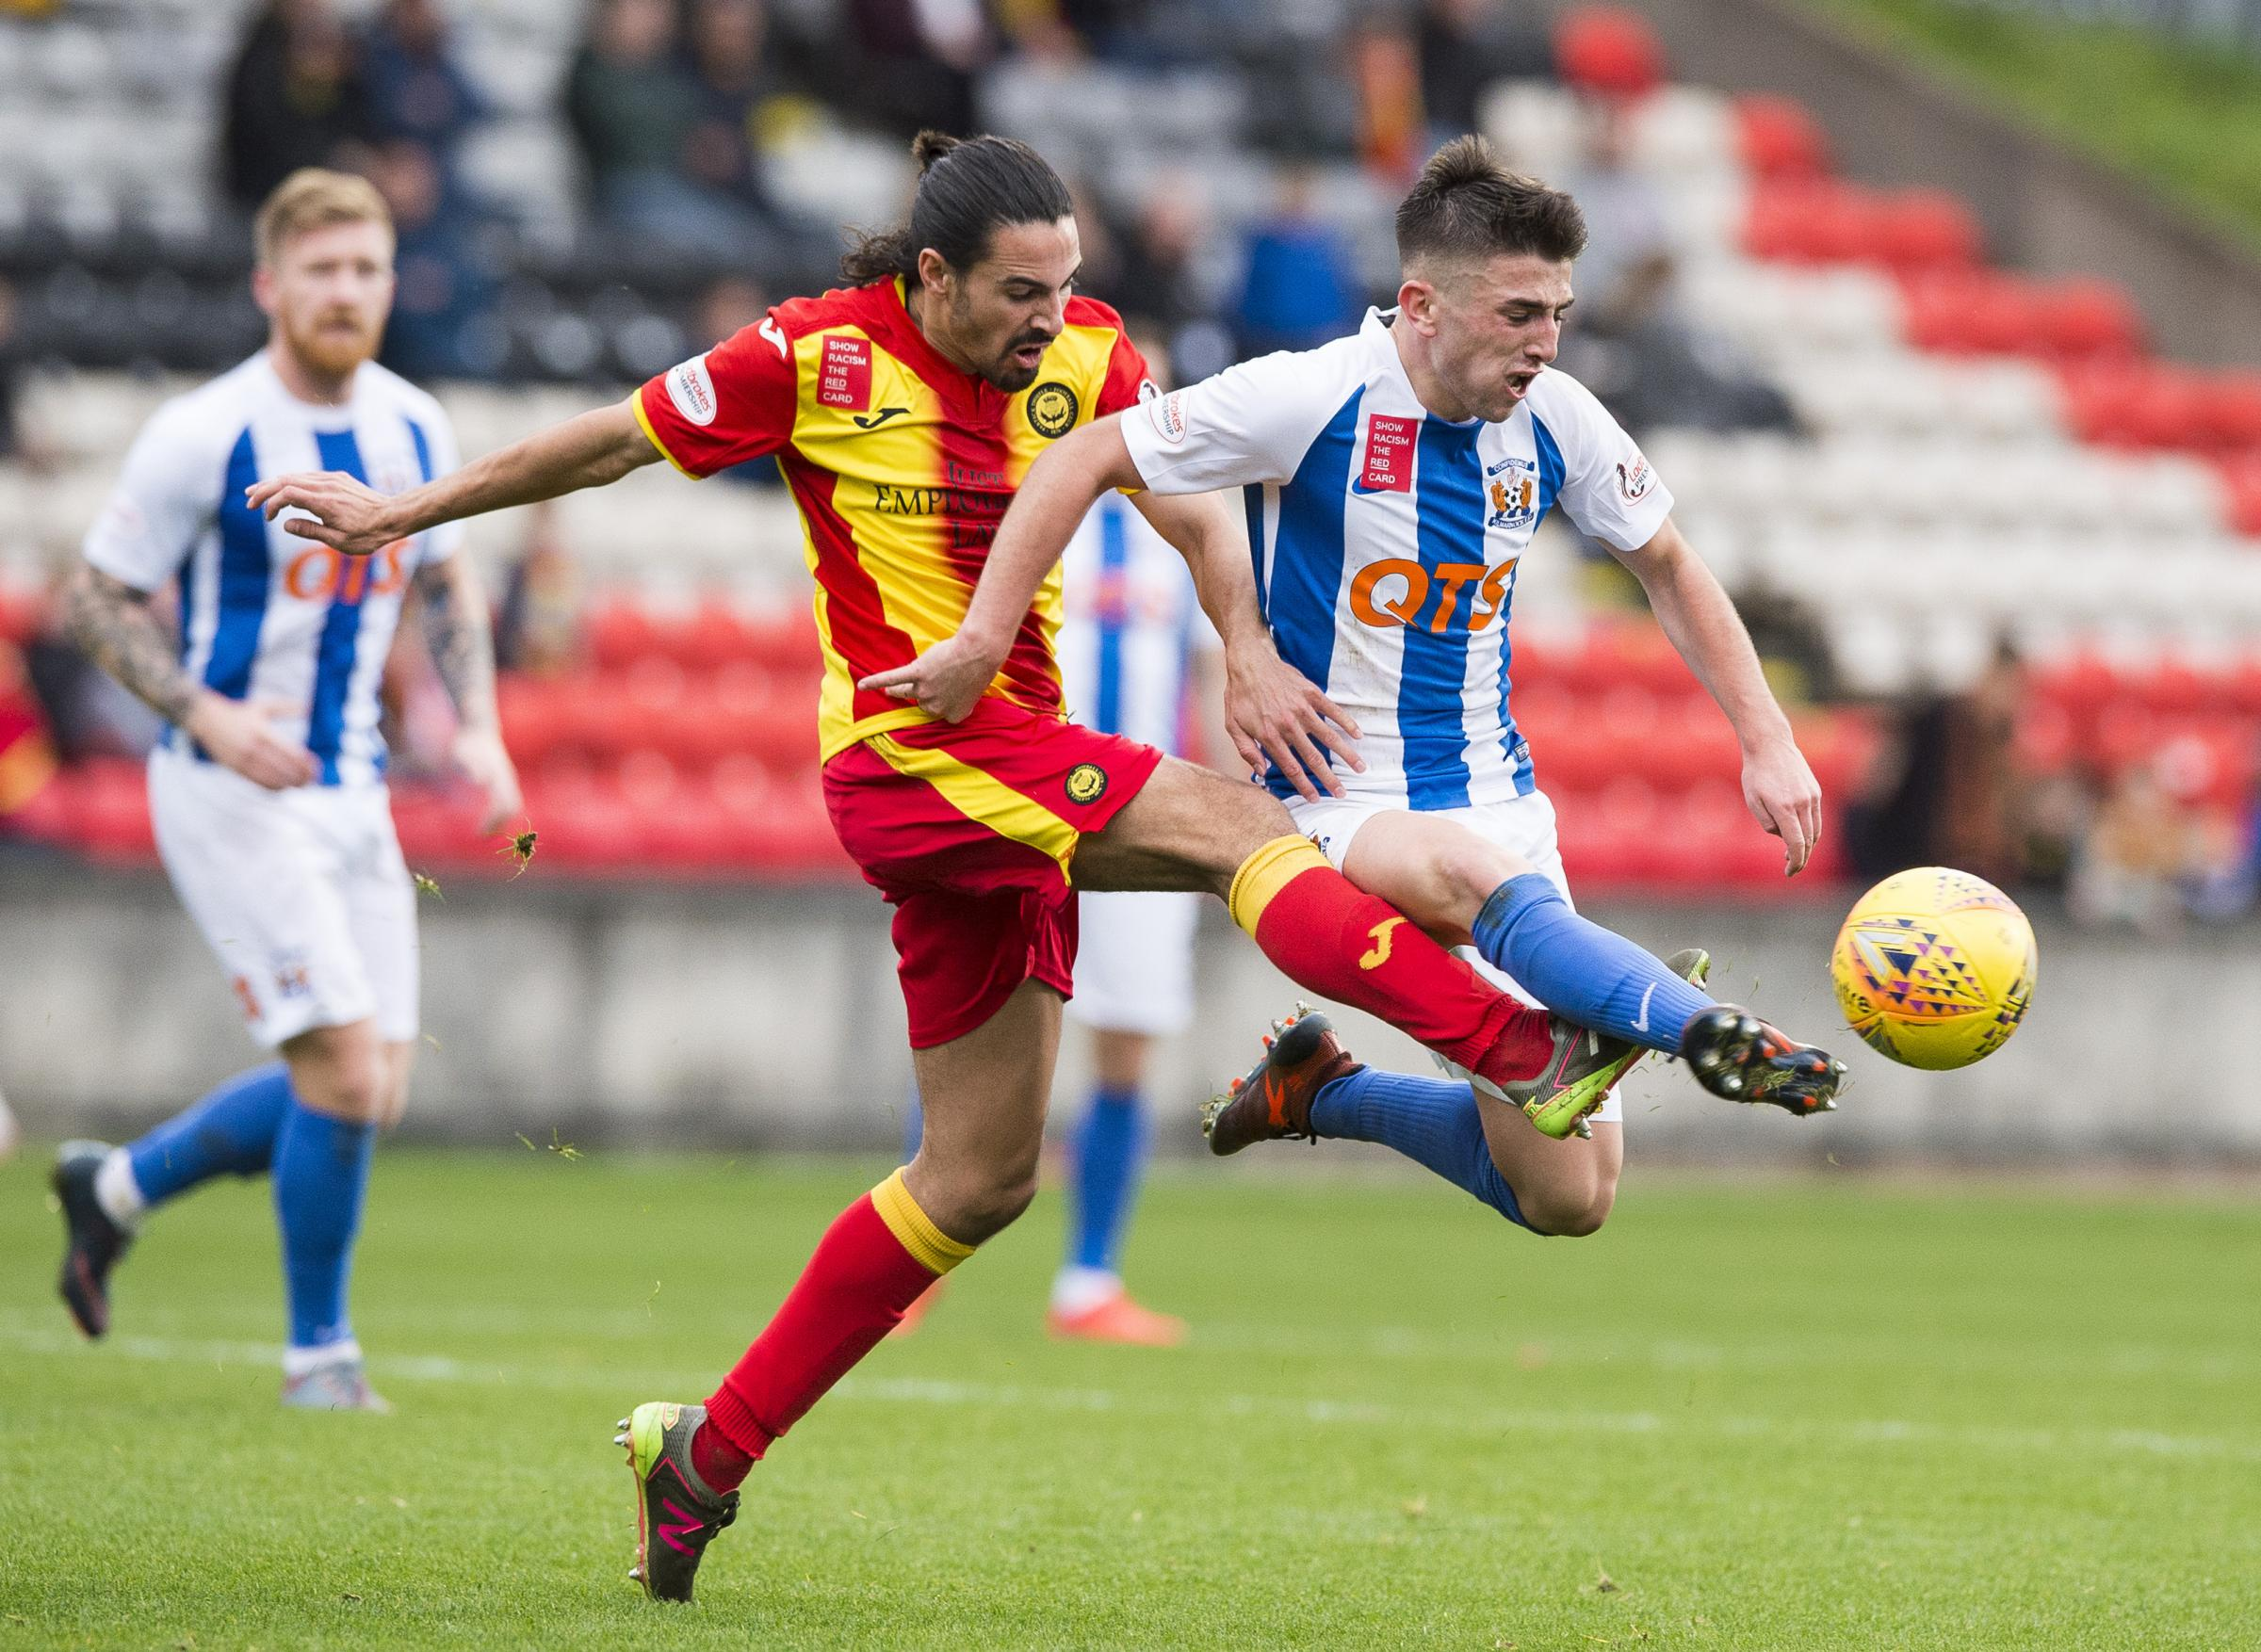 Digging in: Ryan Edwards says that Partick Thistle's recent performances have been unacceptable.